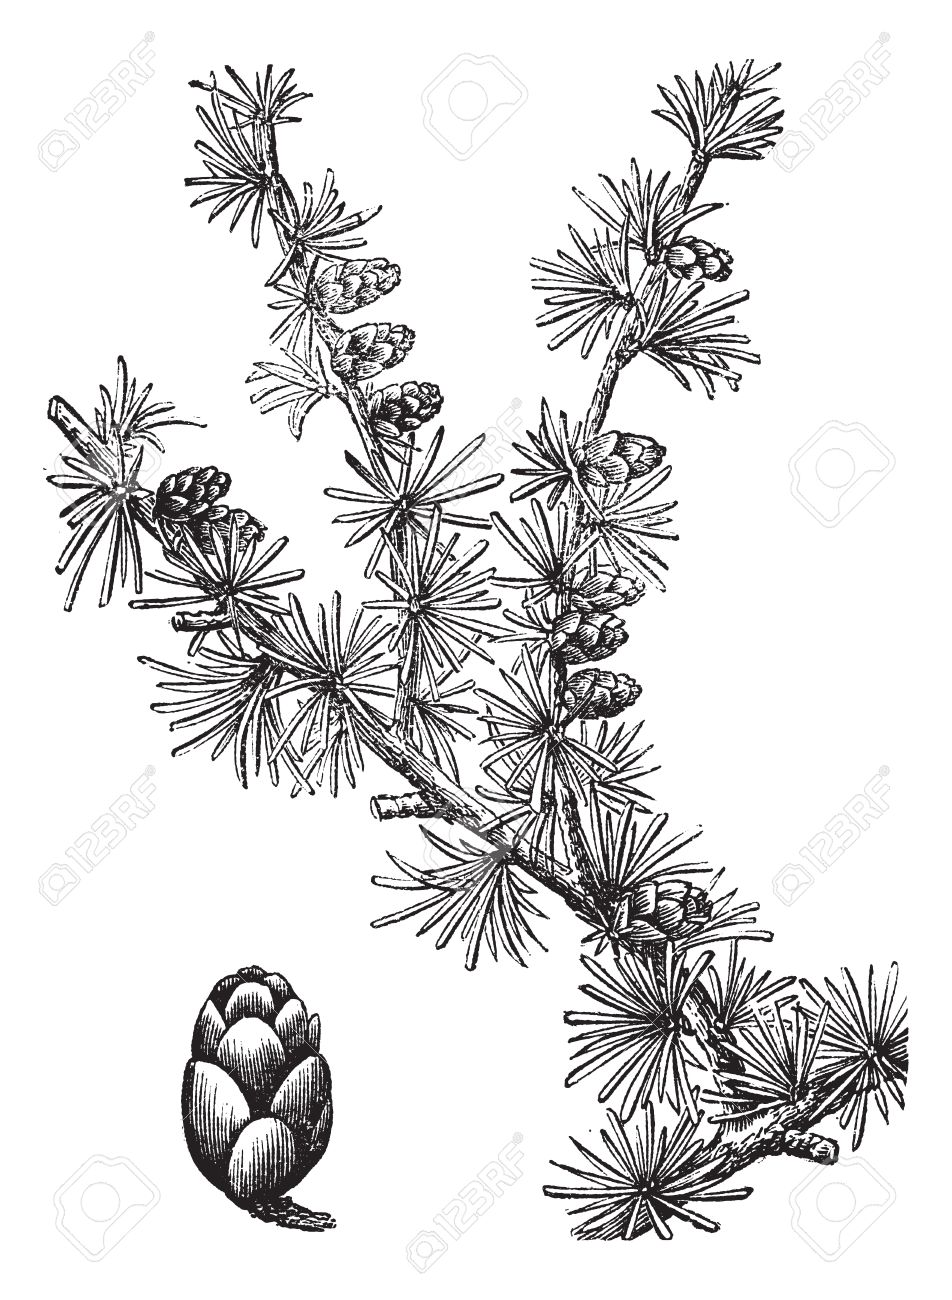 475 Larch Stock Vector Illustration And Royalty Free Larch Clipart.